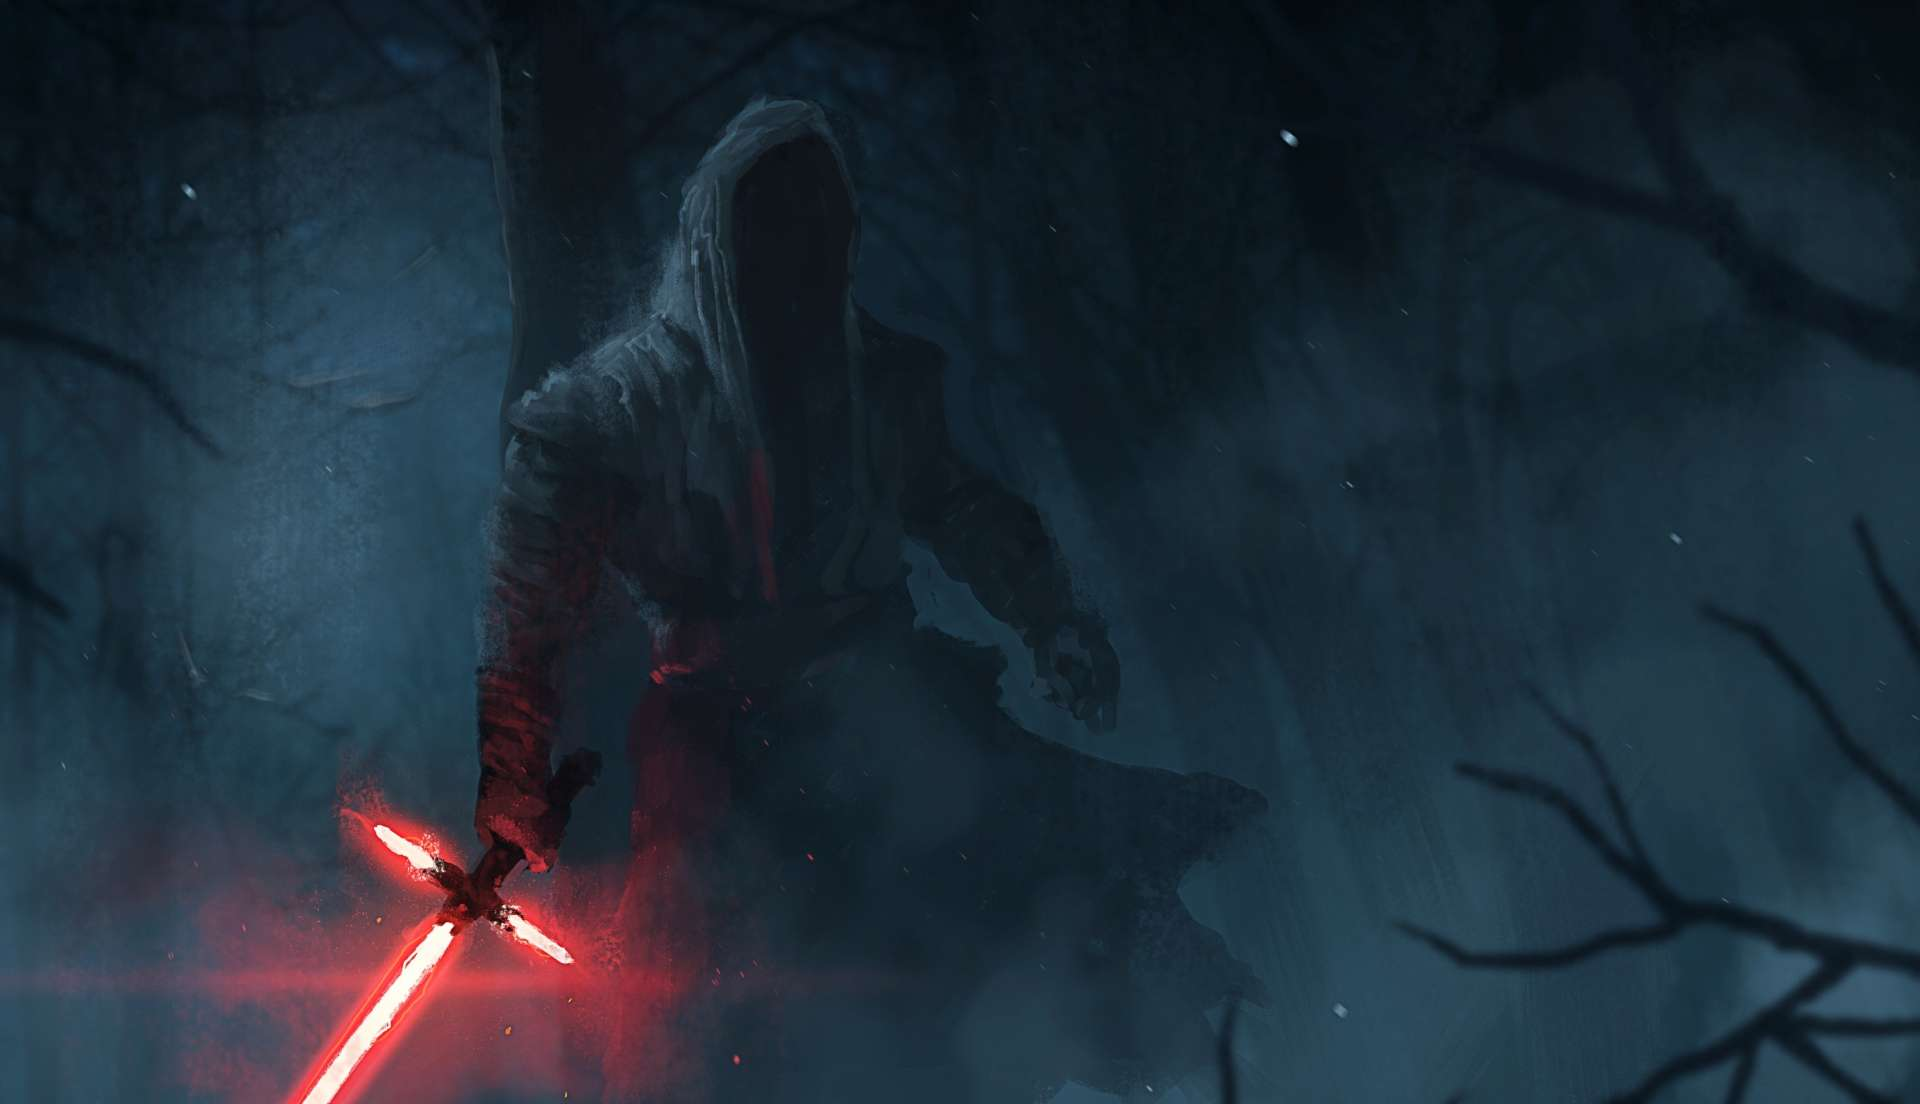 Star Wars Episode VII The Force Awakens Wallpaper 008